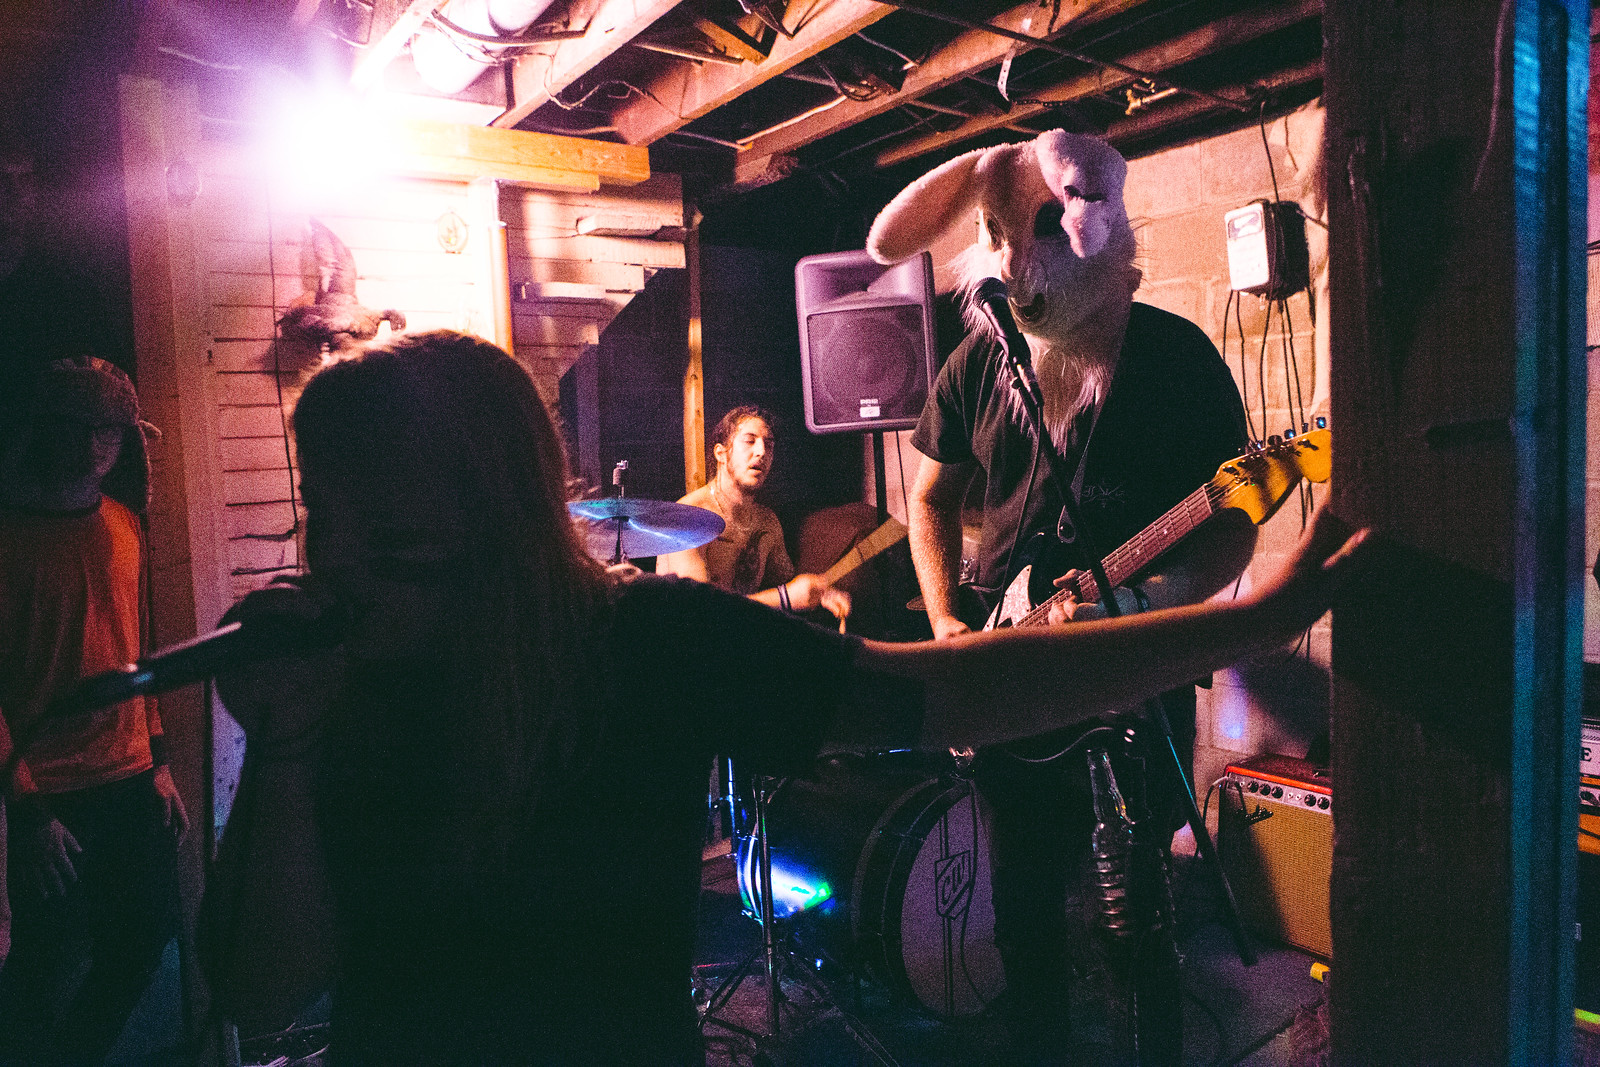 Better Friend | The Tree House | 11.20.15